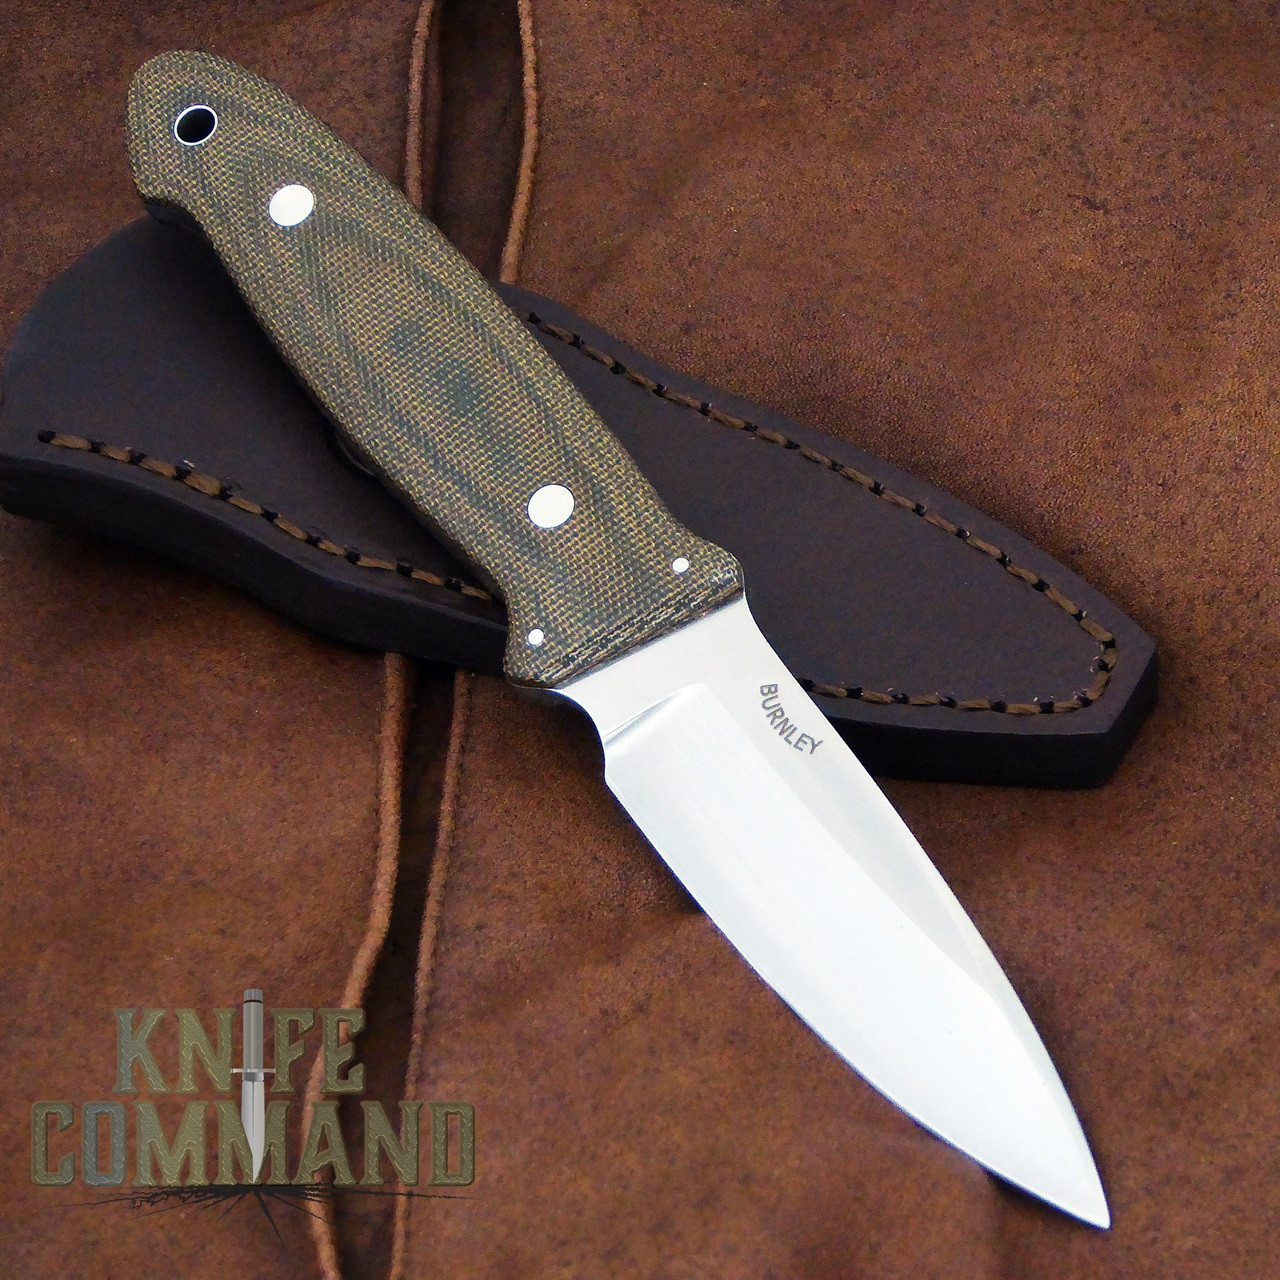 Boker Cub Lucas Burnley EDC Fixed Blade Knife 120661.   Burnley design, Burnley on the blade.